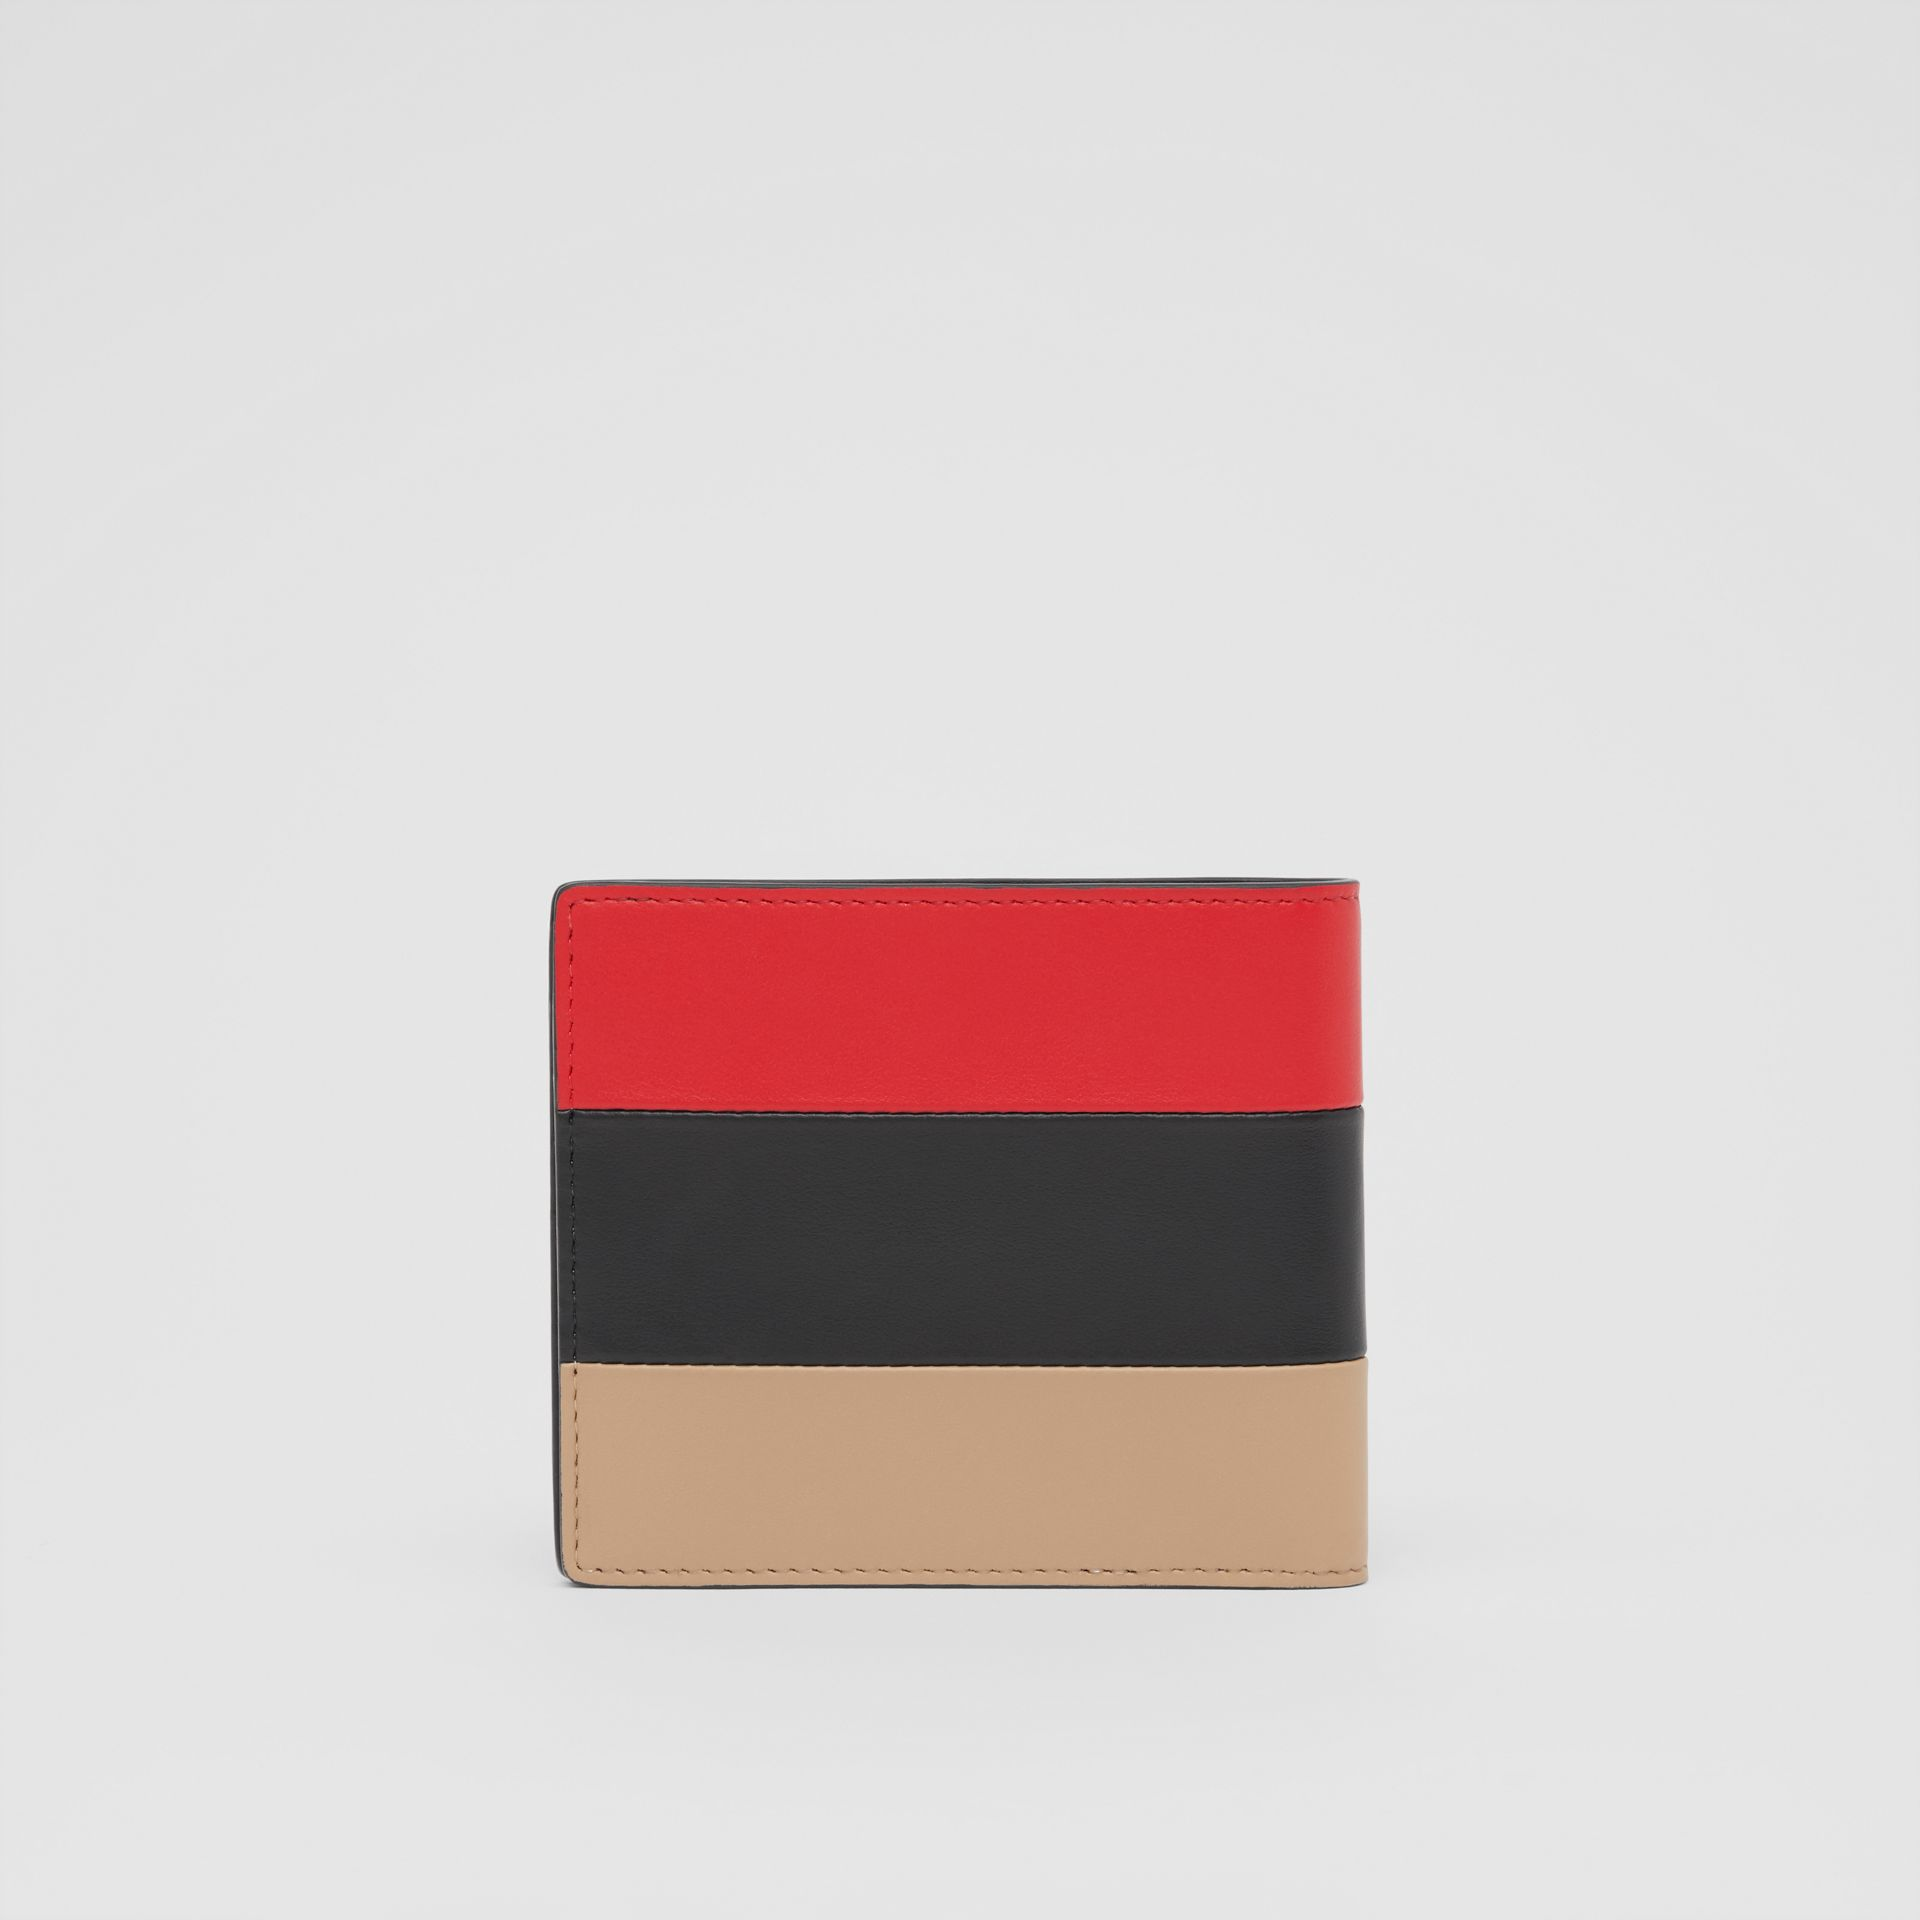 Colour Block Leather International Bifold Wallet in Red/black/beige - Men | Burberry Hong Kong S.A.R - gallery image 4